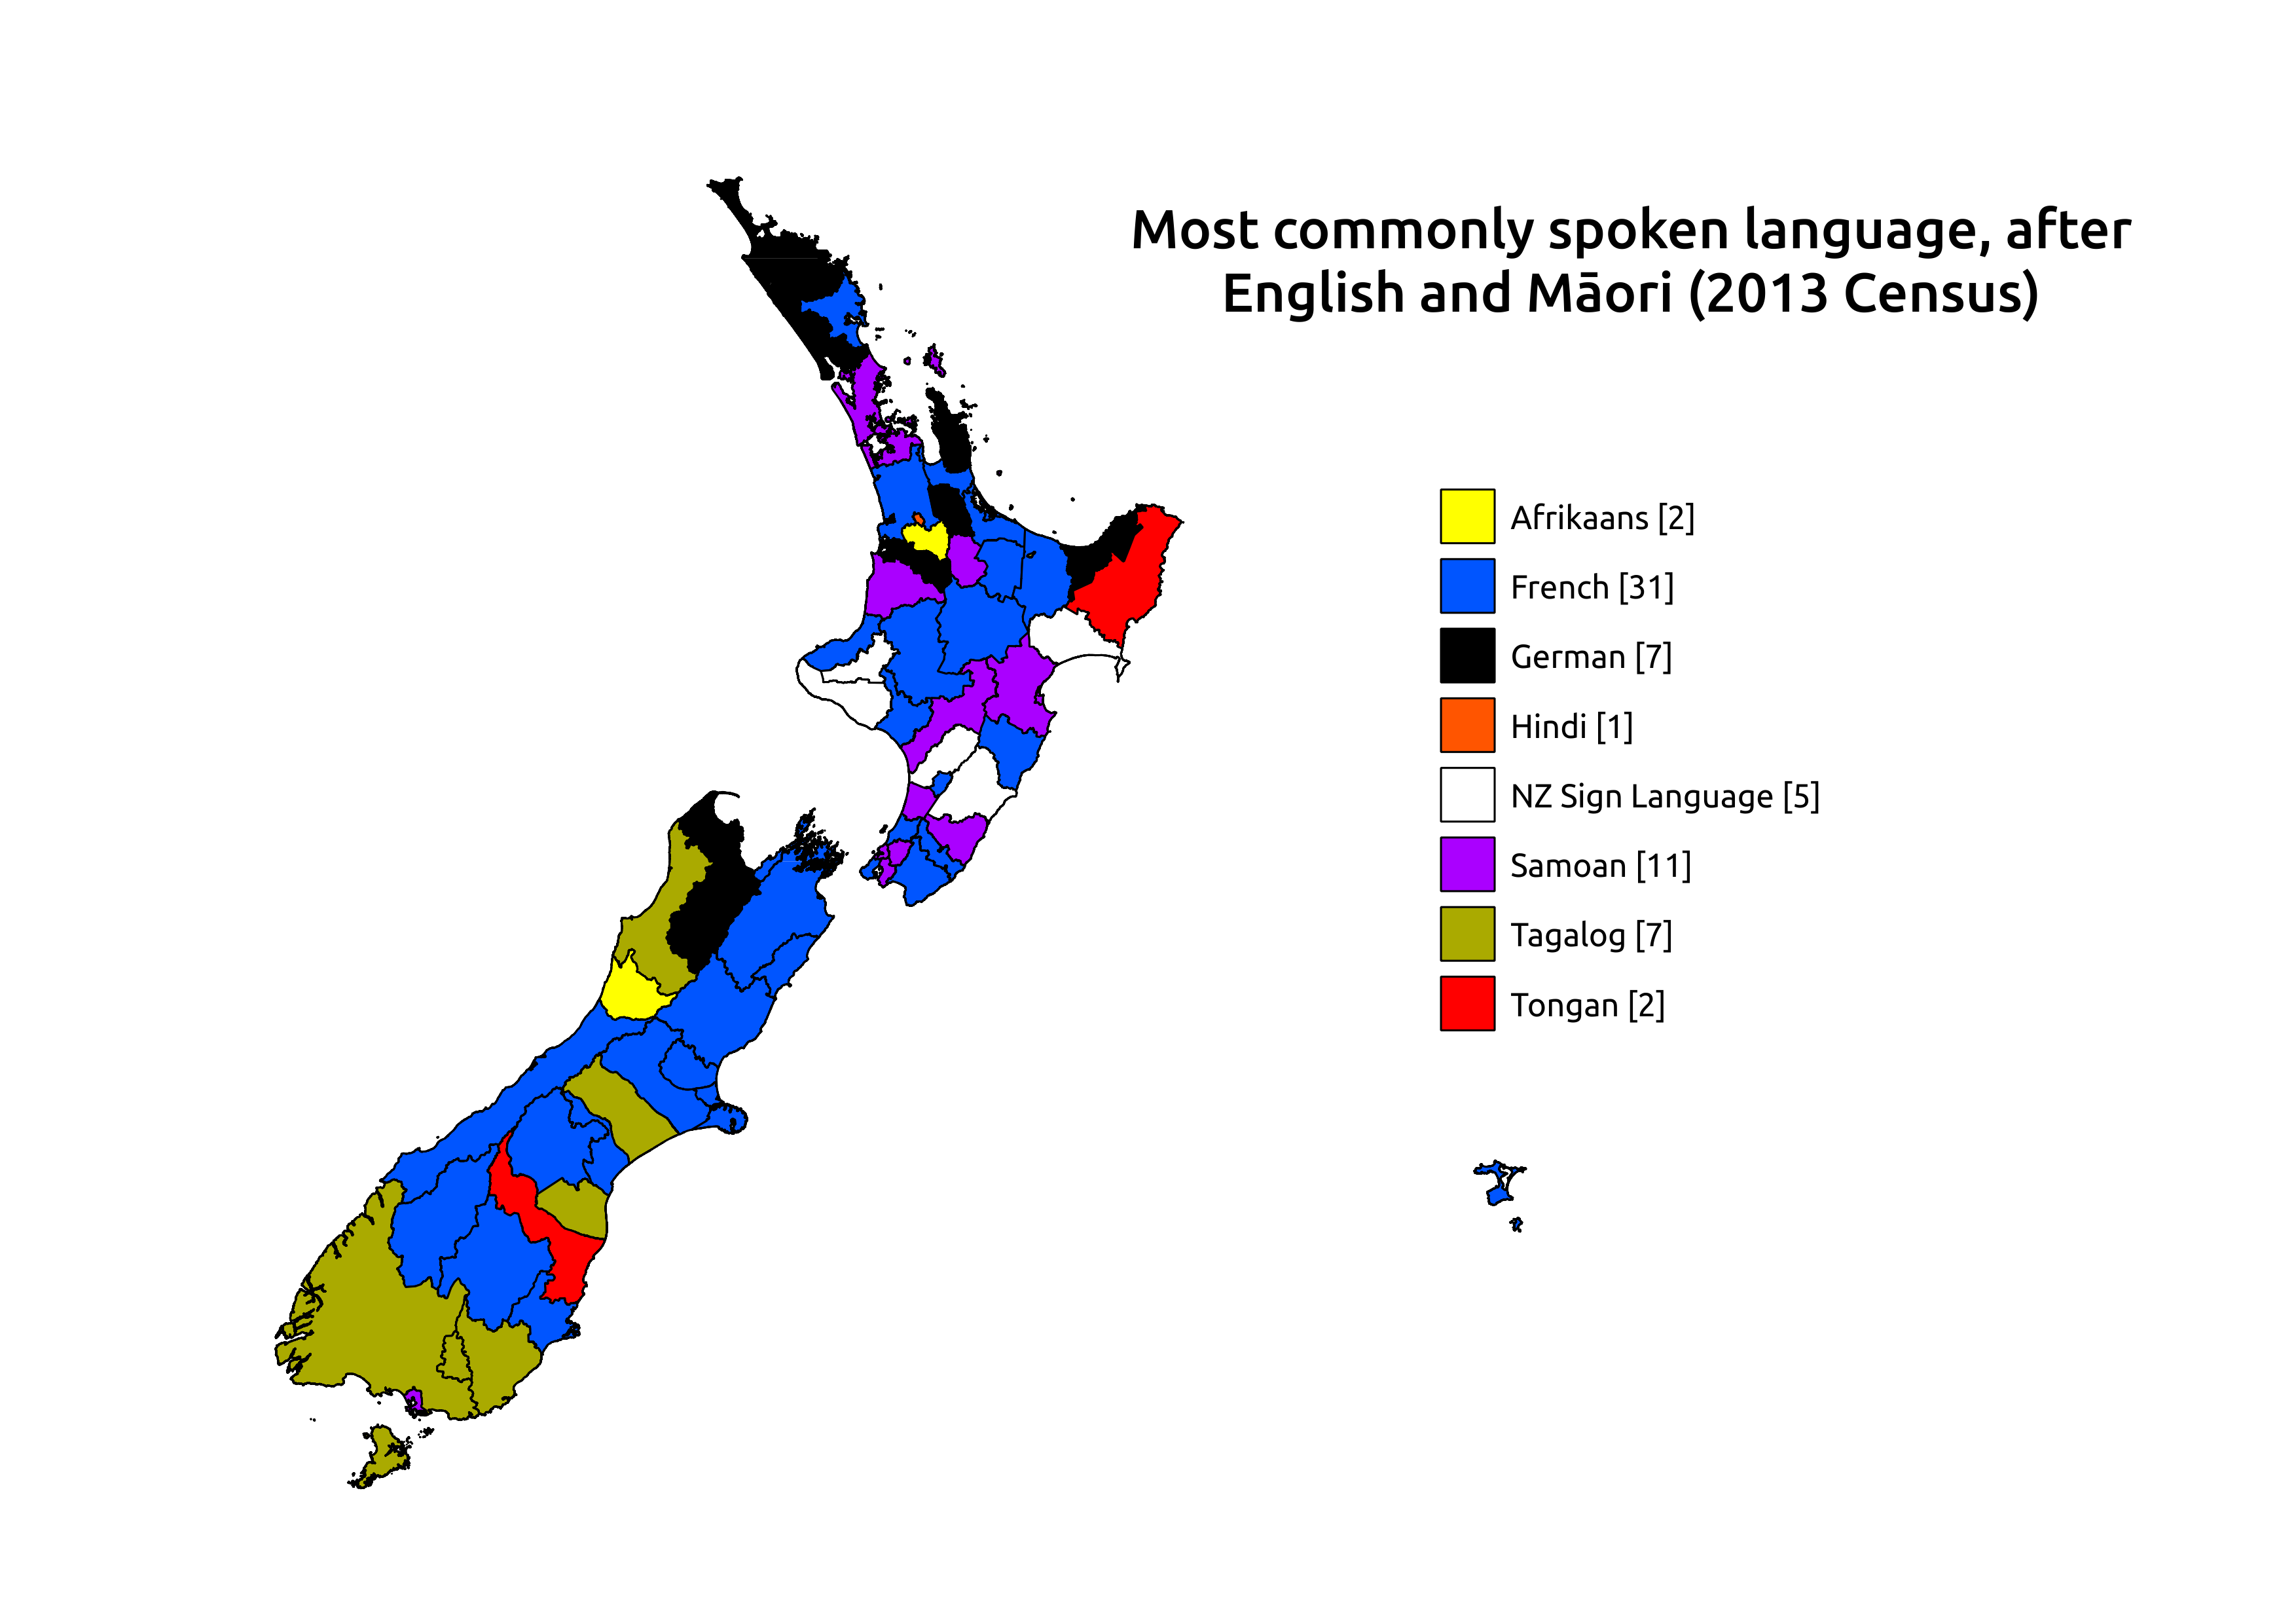 New Zealand 3rd Most Commonly Spoken Language